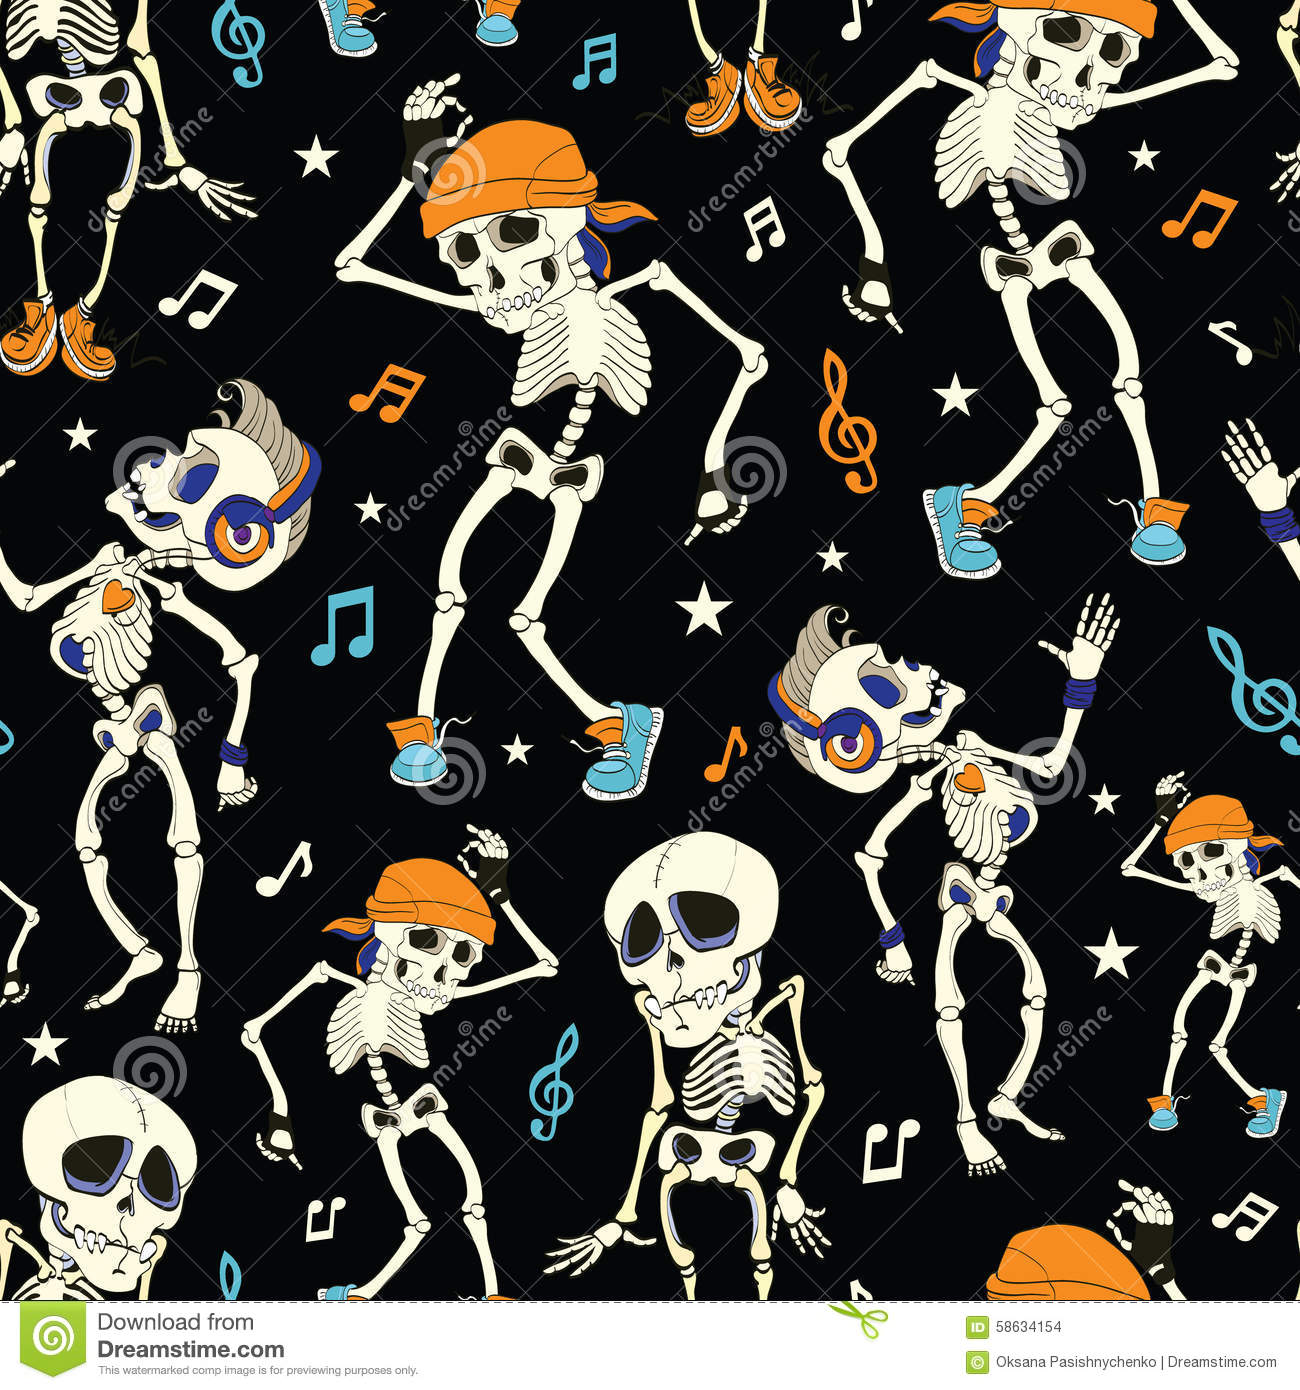 Vector Cartoon Halloween Skeletons Royalty Free Stock Photography ...